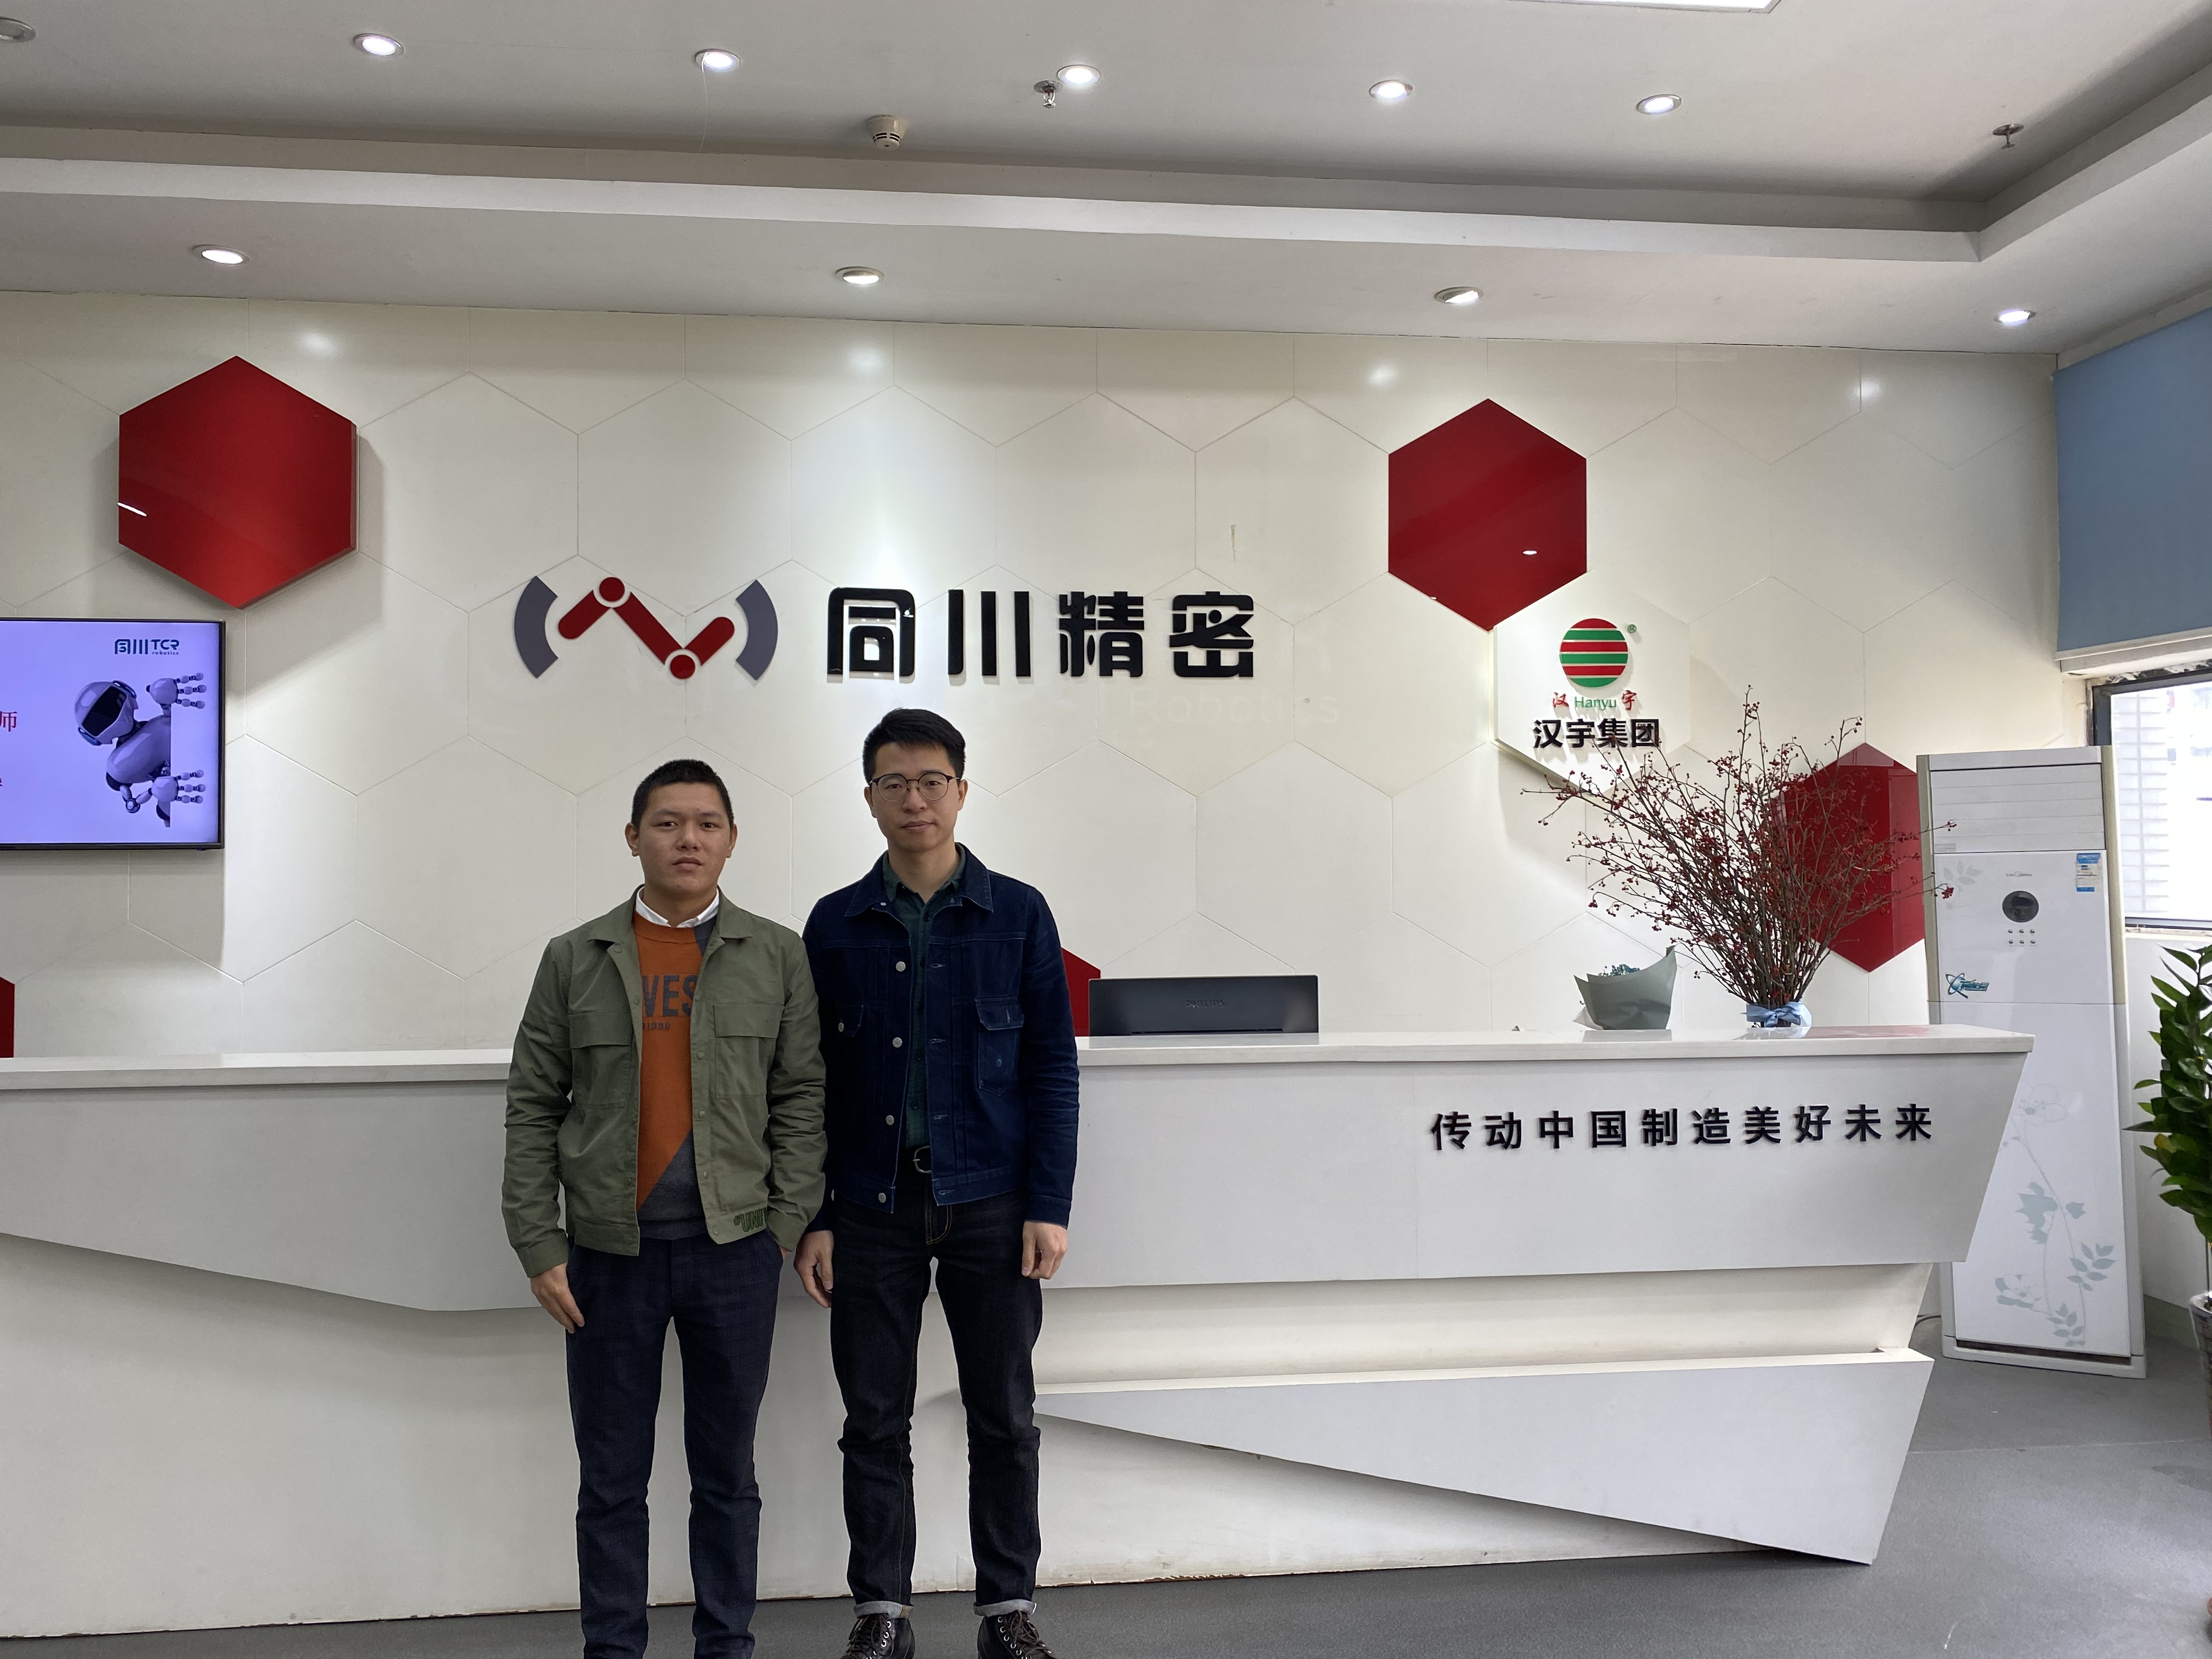 Business Visit | Shenzhen Tongchuan Technology Co. Ltd., focuses on the core technology of industrial robots.